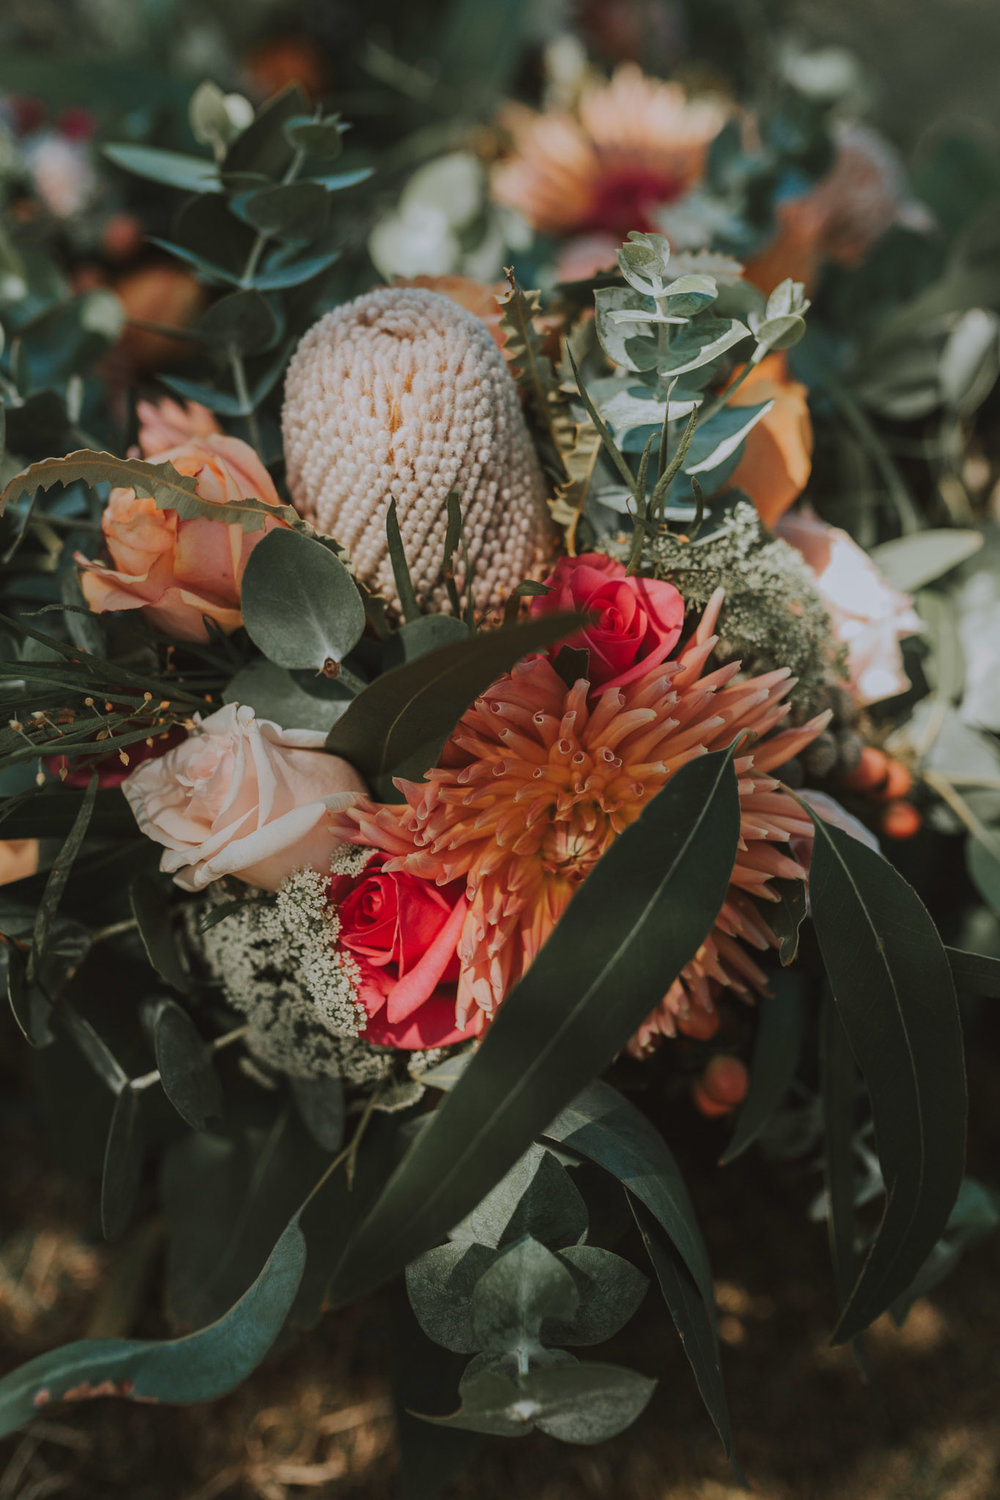 Forget Me Not Floret - Florist Based in the Yarra Valley, Elizabeth shon such vibrancy on Monique and Bens wedding. Oh would you look at that, they do headpieces too!